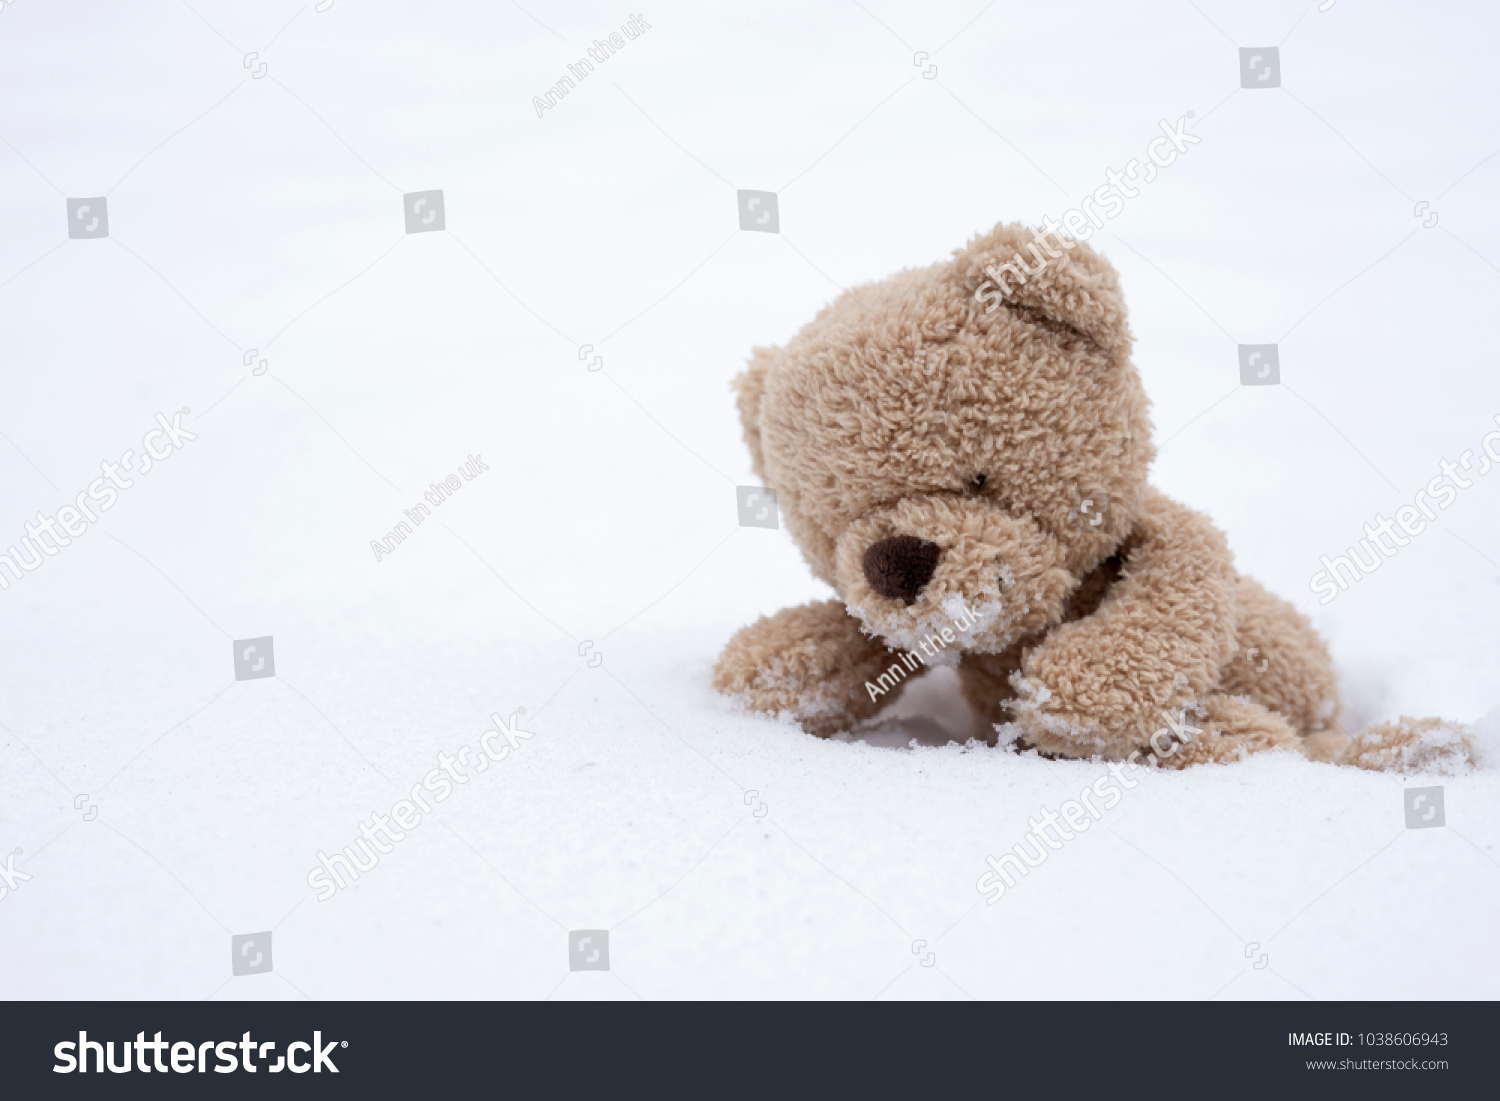 One teddy bear sitting alone on stock photo 100 legal protection one teddy bear sitting alone on snow during winter time a cute brown bear climbing altavistaventures Choice Image